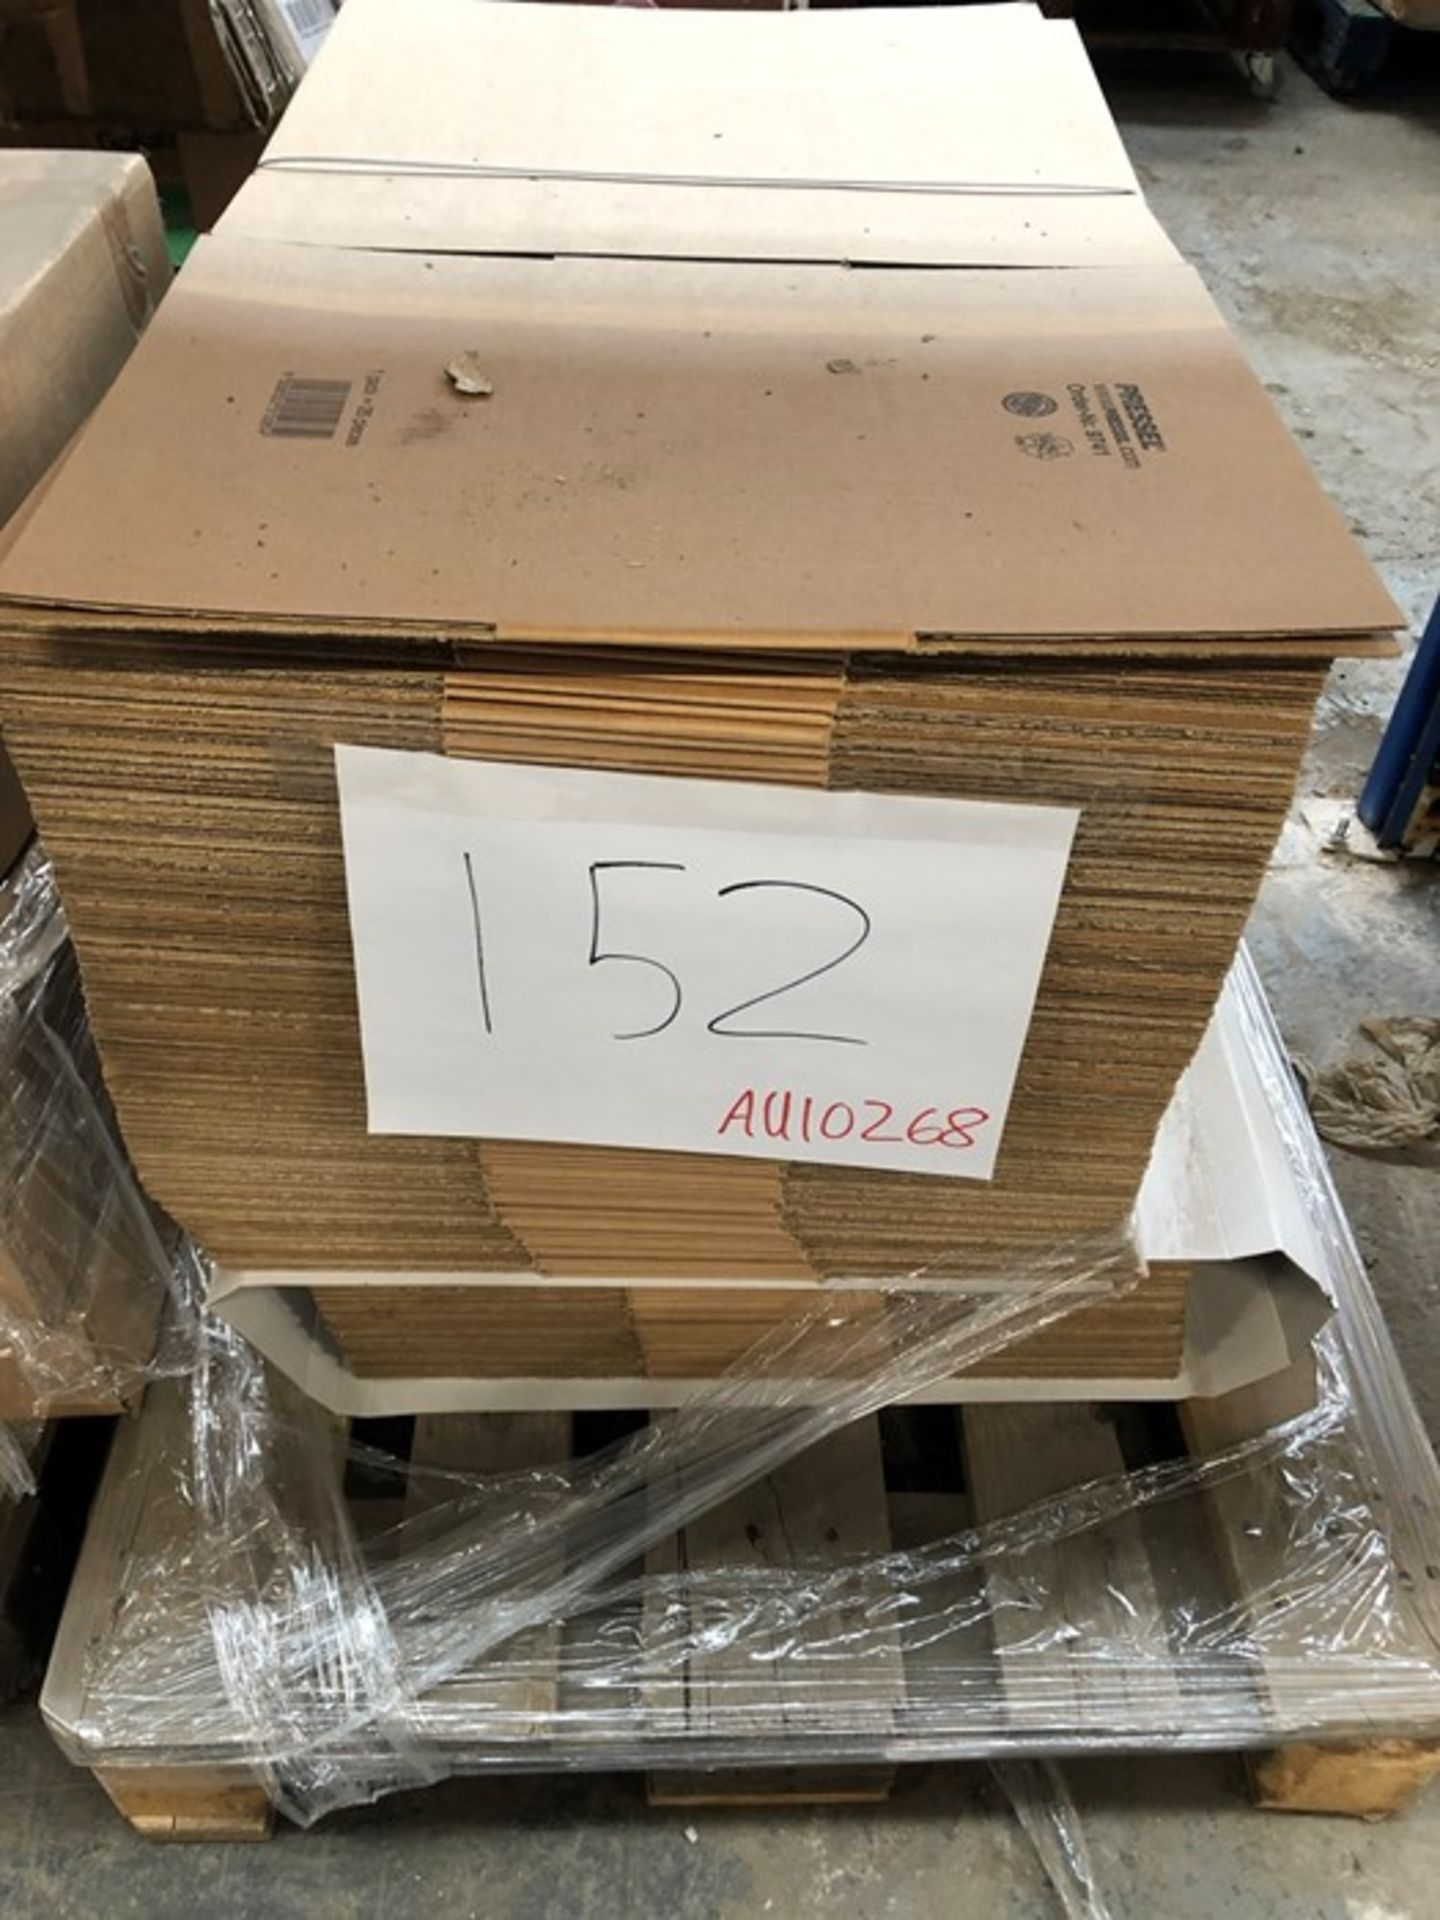 Lotto 115 - 1 LOT TO CONTAIN ASSORTED CARDBOARD BOXES / PN - NPN (PUBLIC VIEWING AVAILABLE)